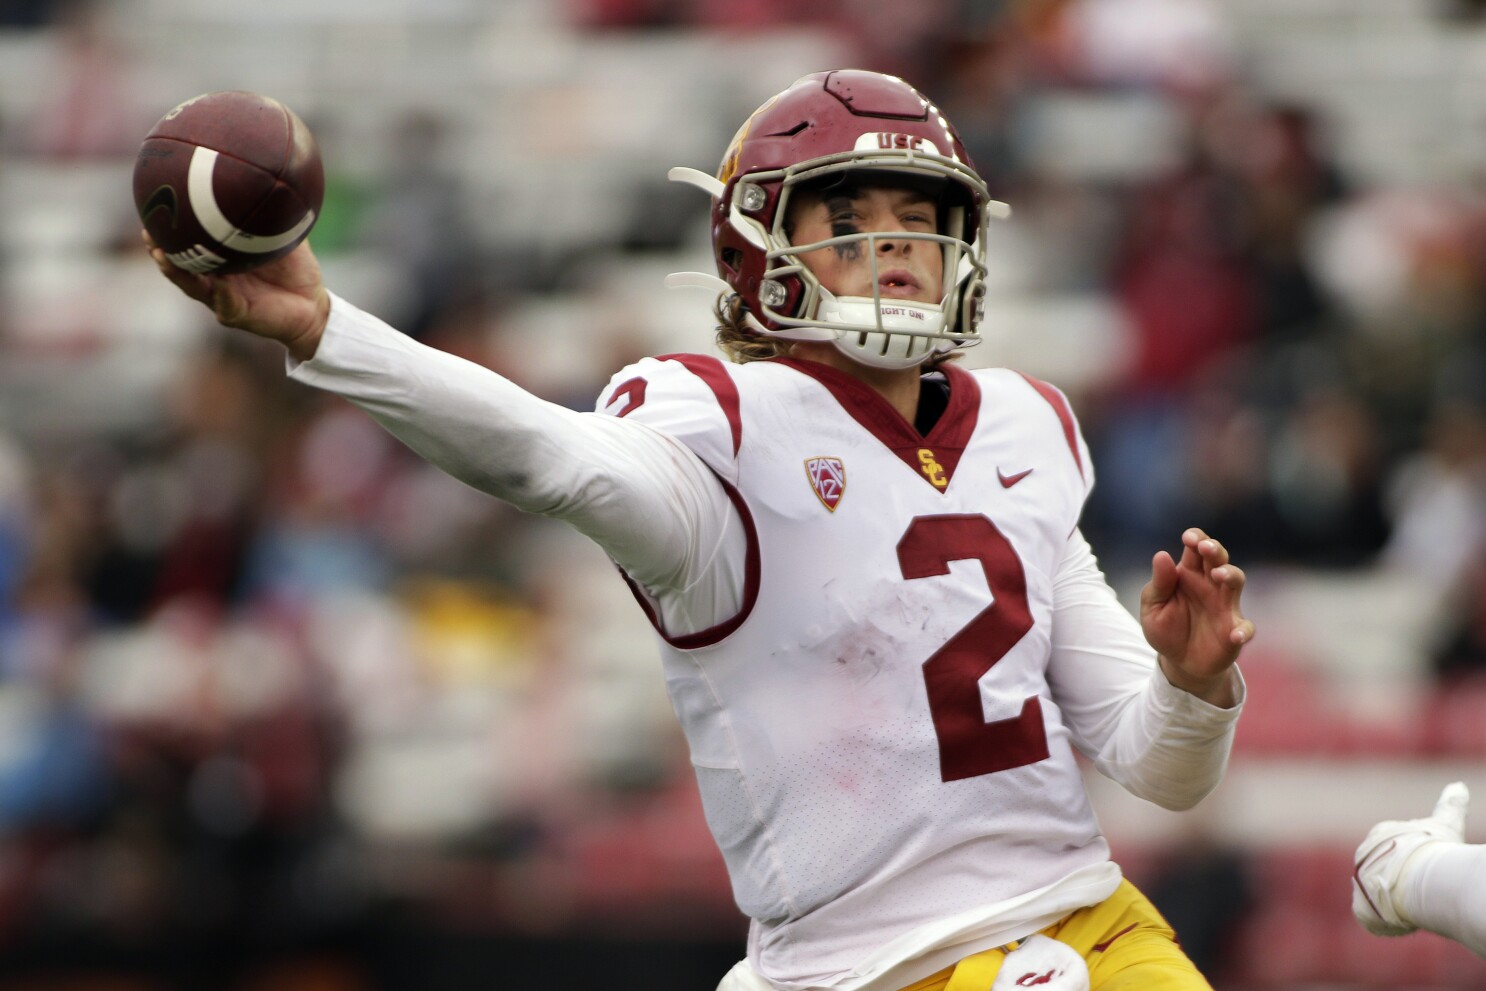 USC rolls to win in big debuts for Jaxson Dart, Donte Williams - Los  Angeles Times